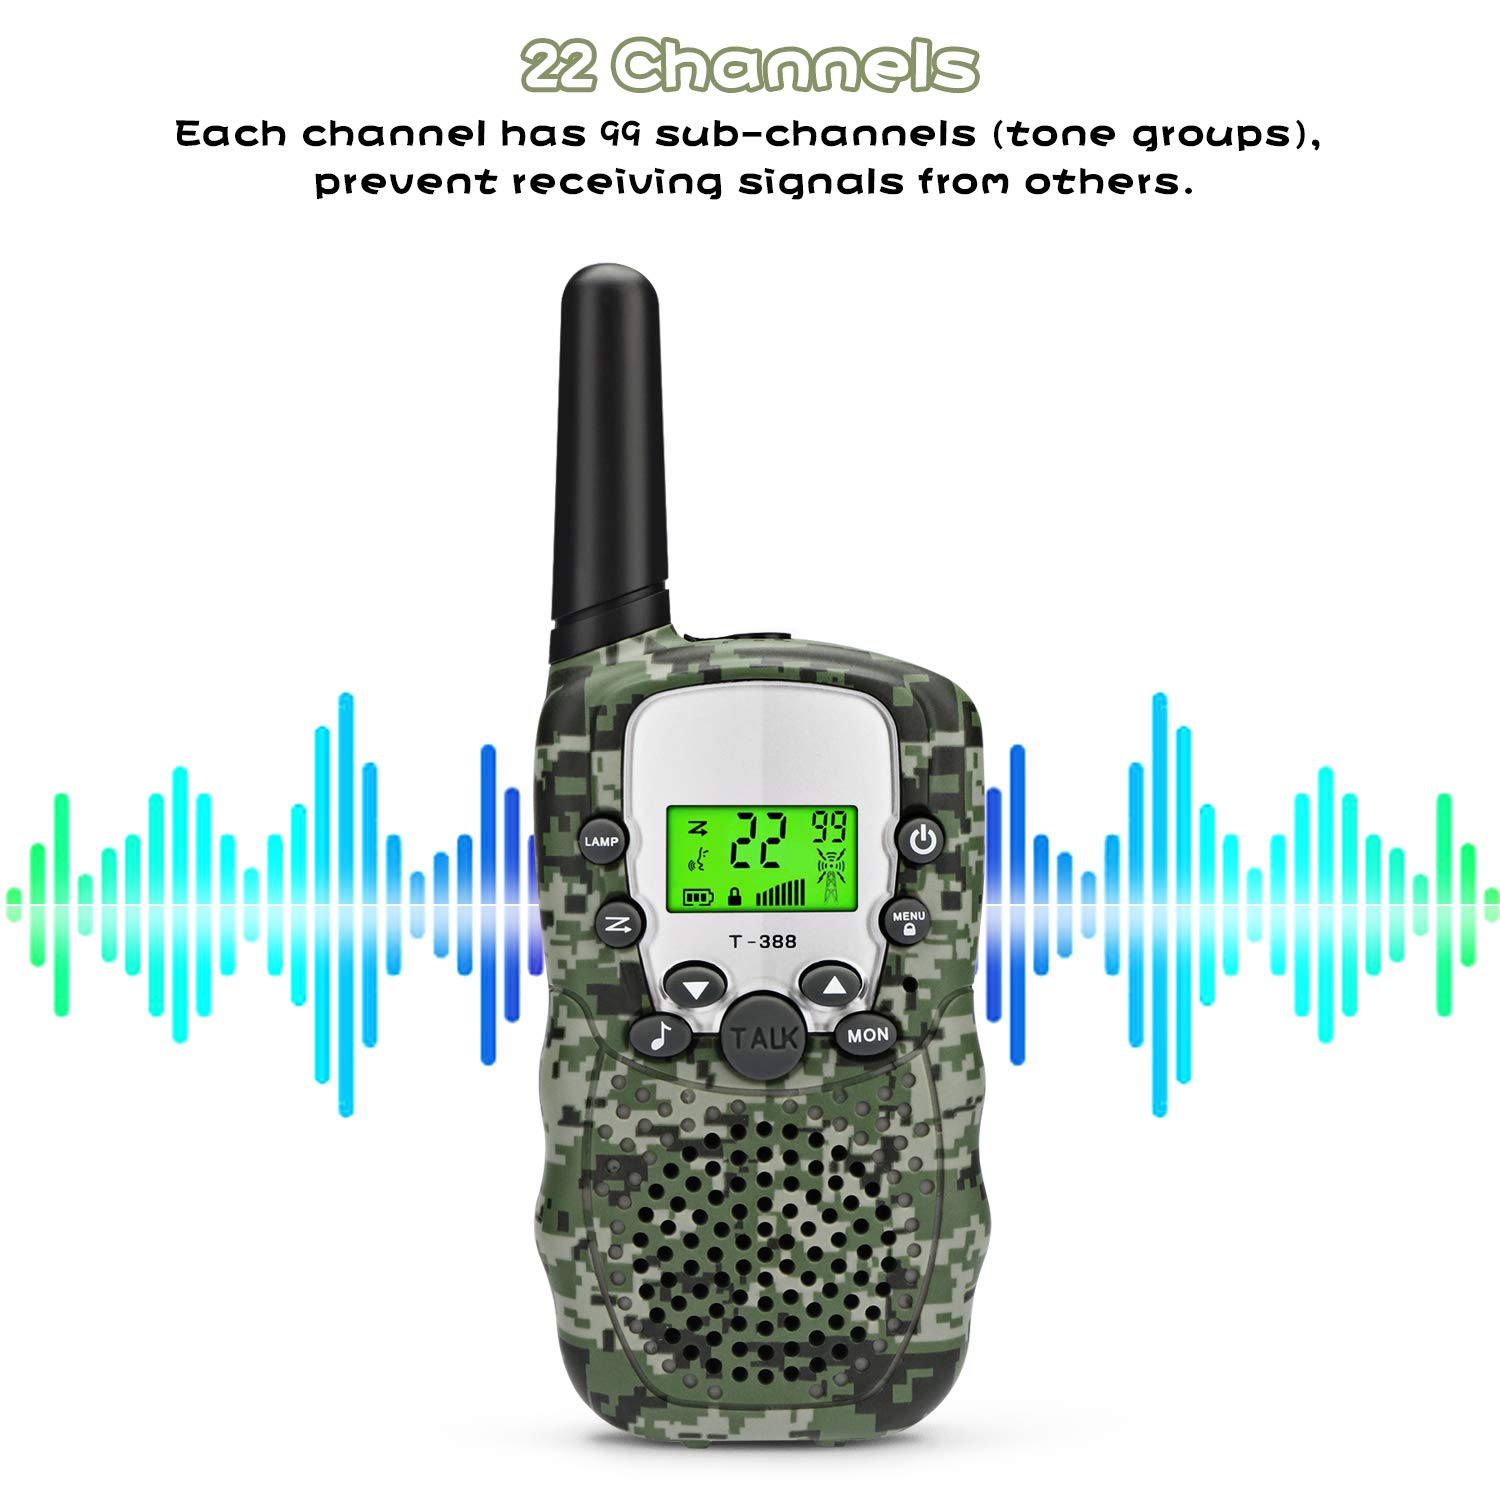 Zhenhao Walkie Talkies for Kids 3 Packs - 22 Channels Two Way Radio 3 Miles Long Range Outdoor Toys with 3 Earpieces and 3 Lanyards for Boys Girls by Zhenhao (Image #3)